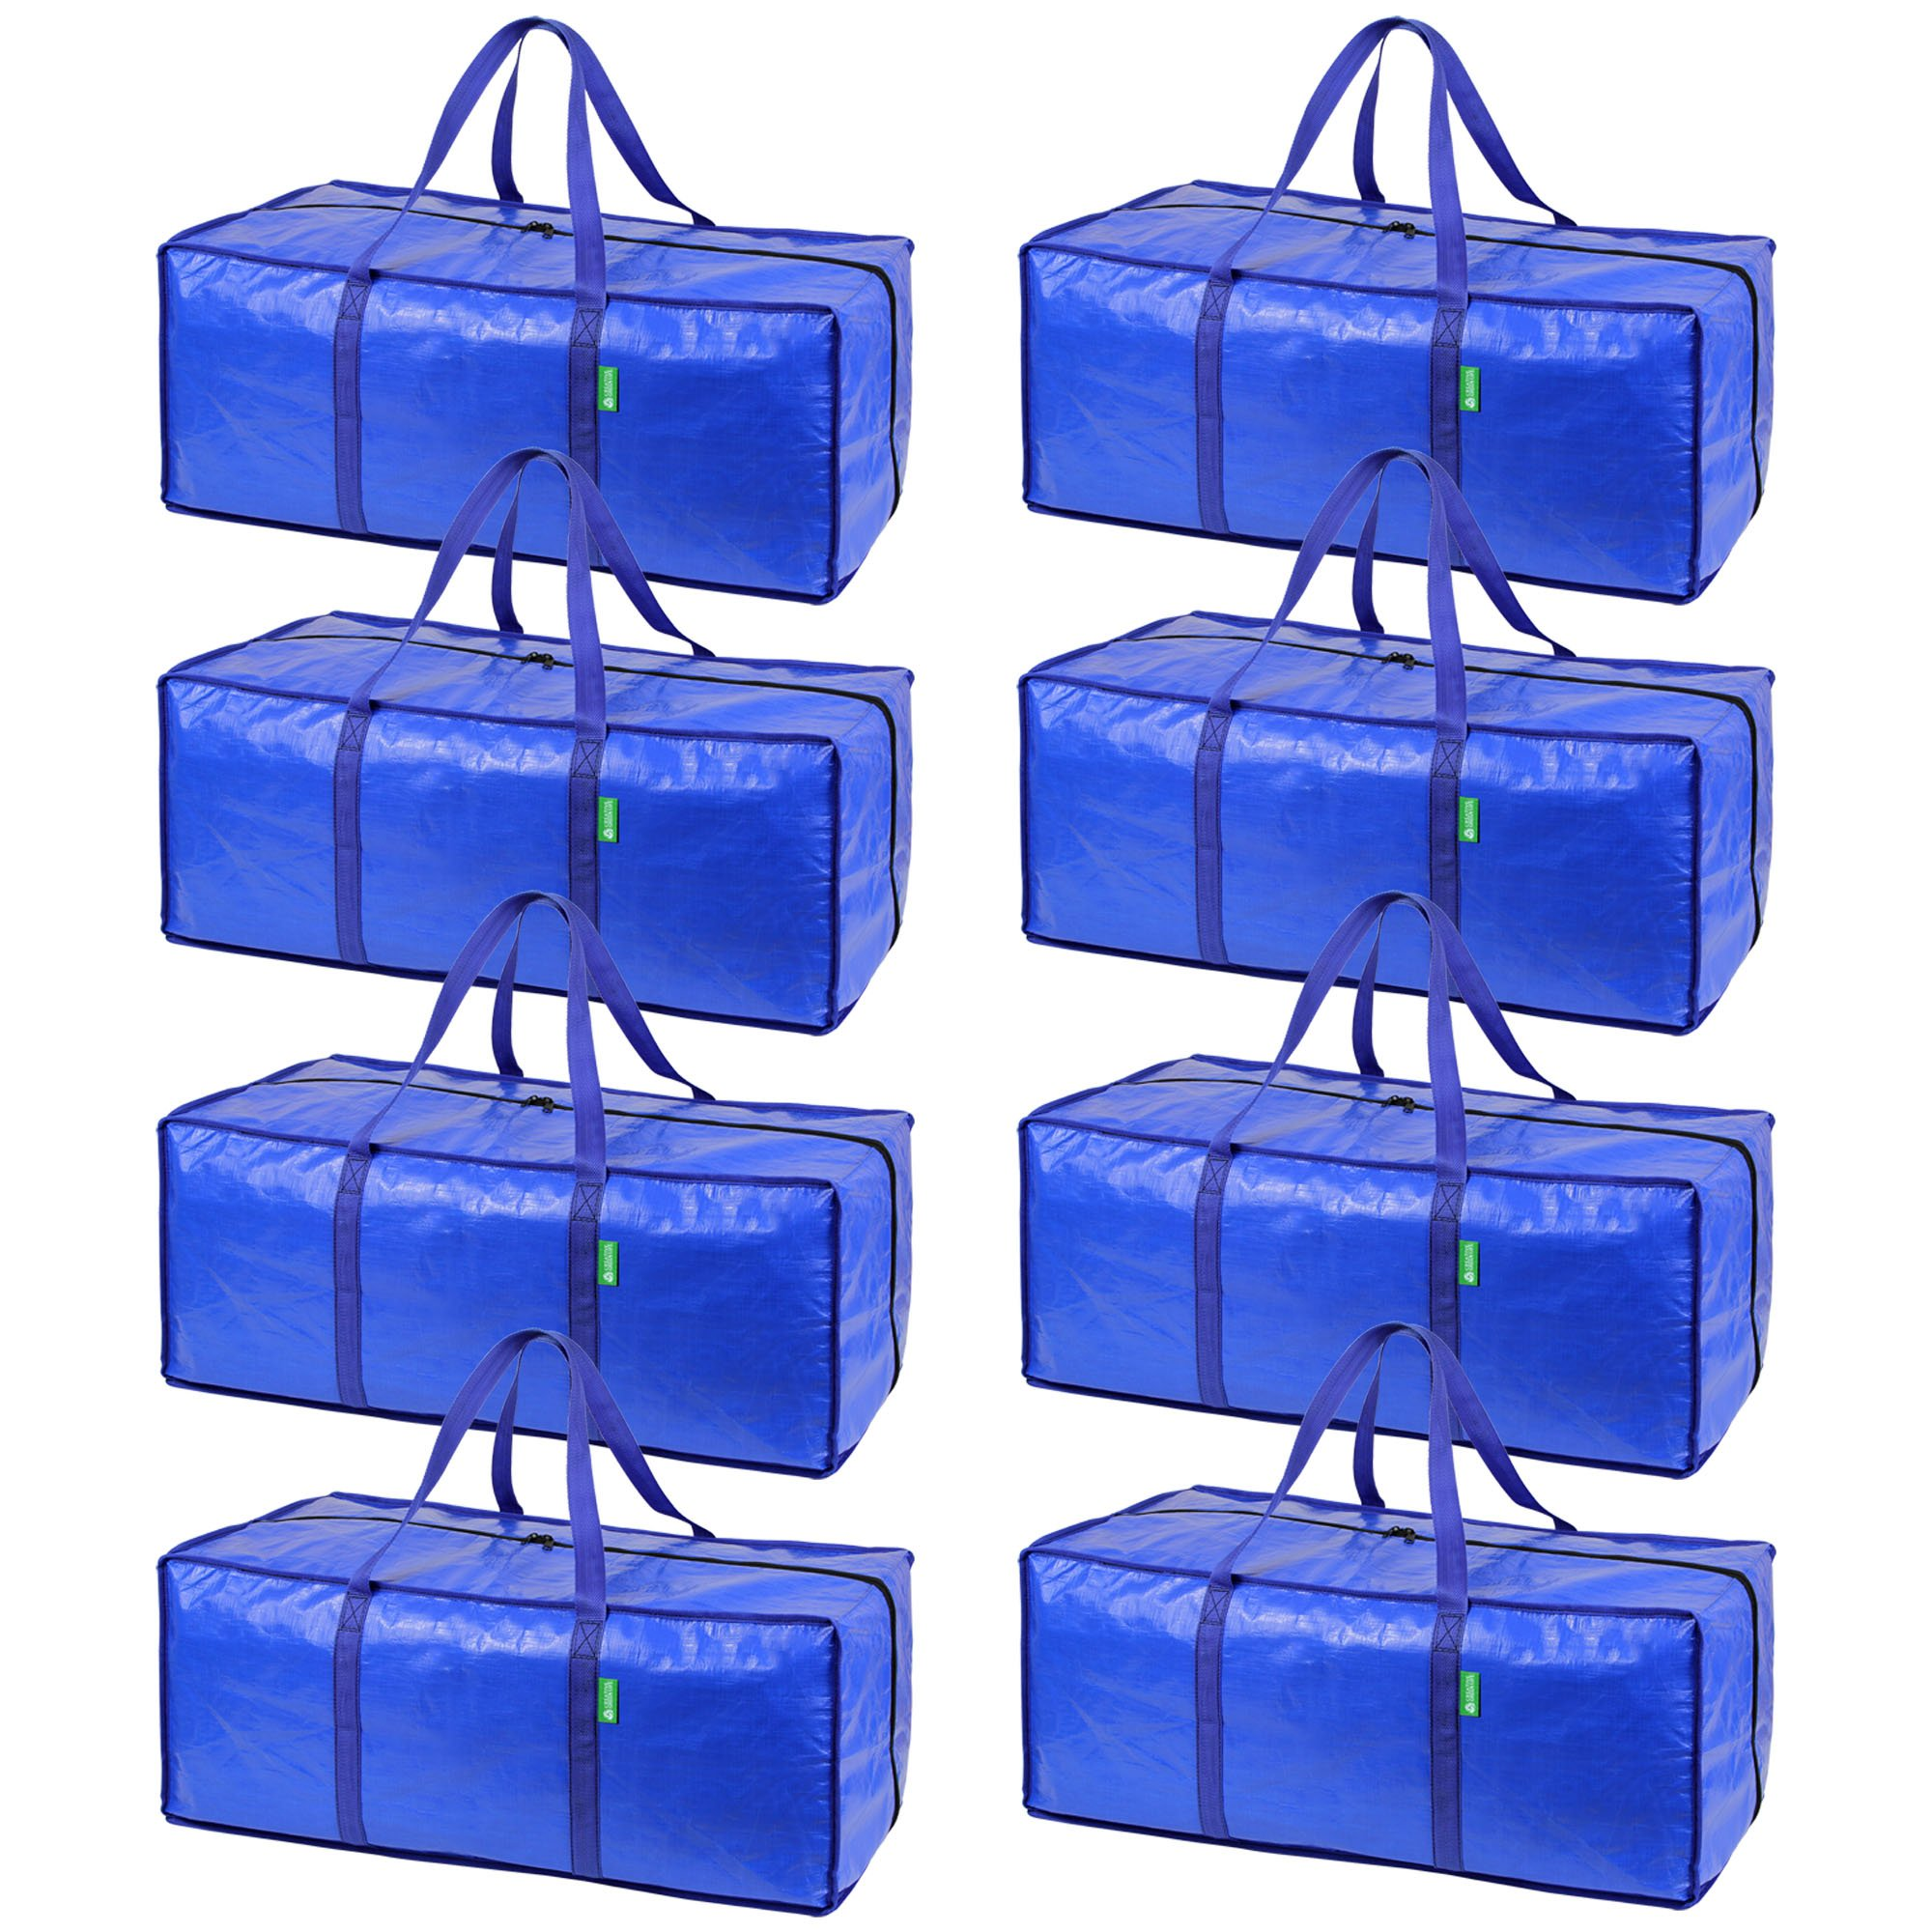 Storage and Moving Bag Set with Zipper Closure (8 Pack). Extra-large, Heavy Duty, Thick Oversized Wardrobe Totes. Bins for Clothing, Comforters, Blankets, Dorm Room Essentials, Decorations, Supplies by Creative Green Life (Image #6)